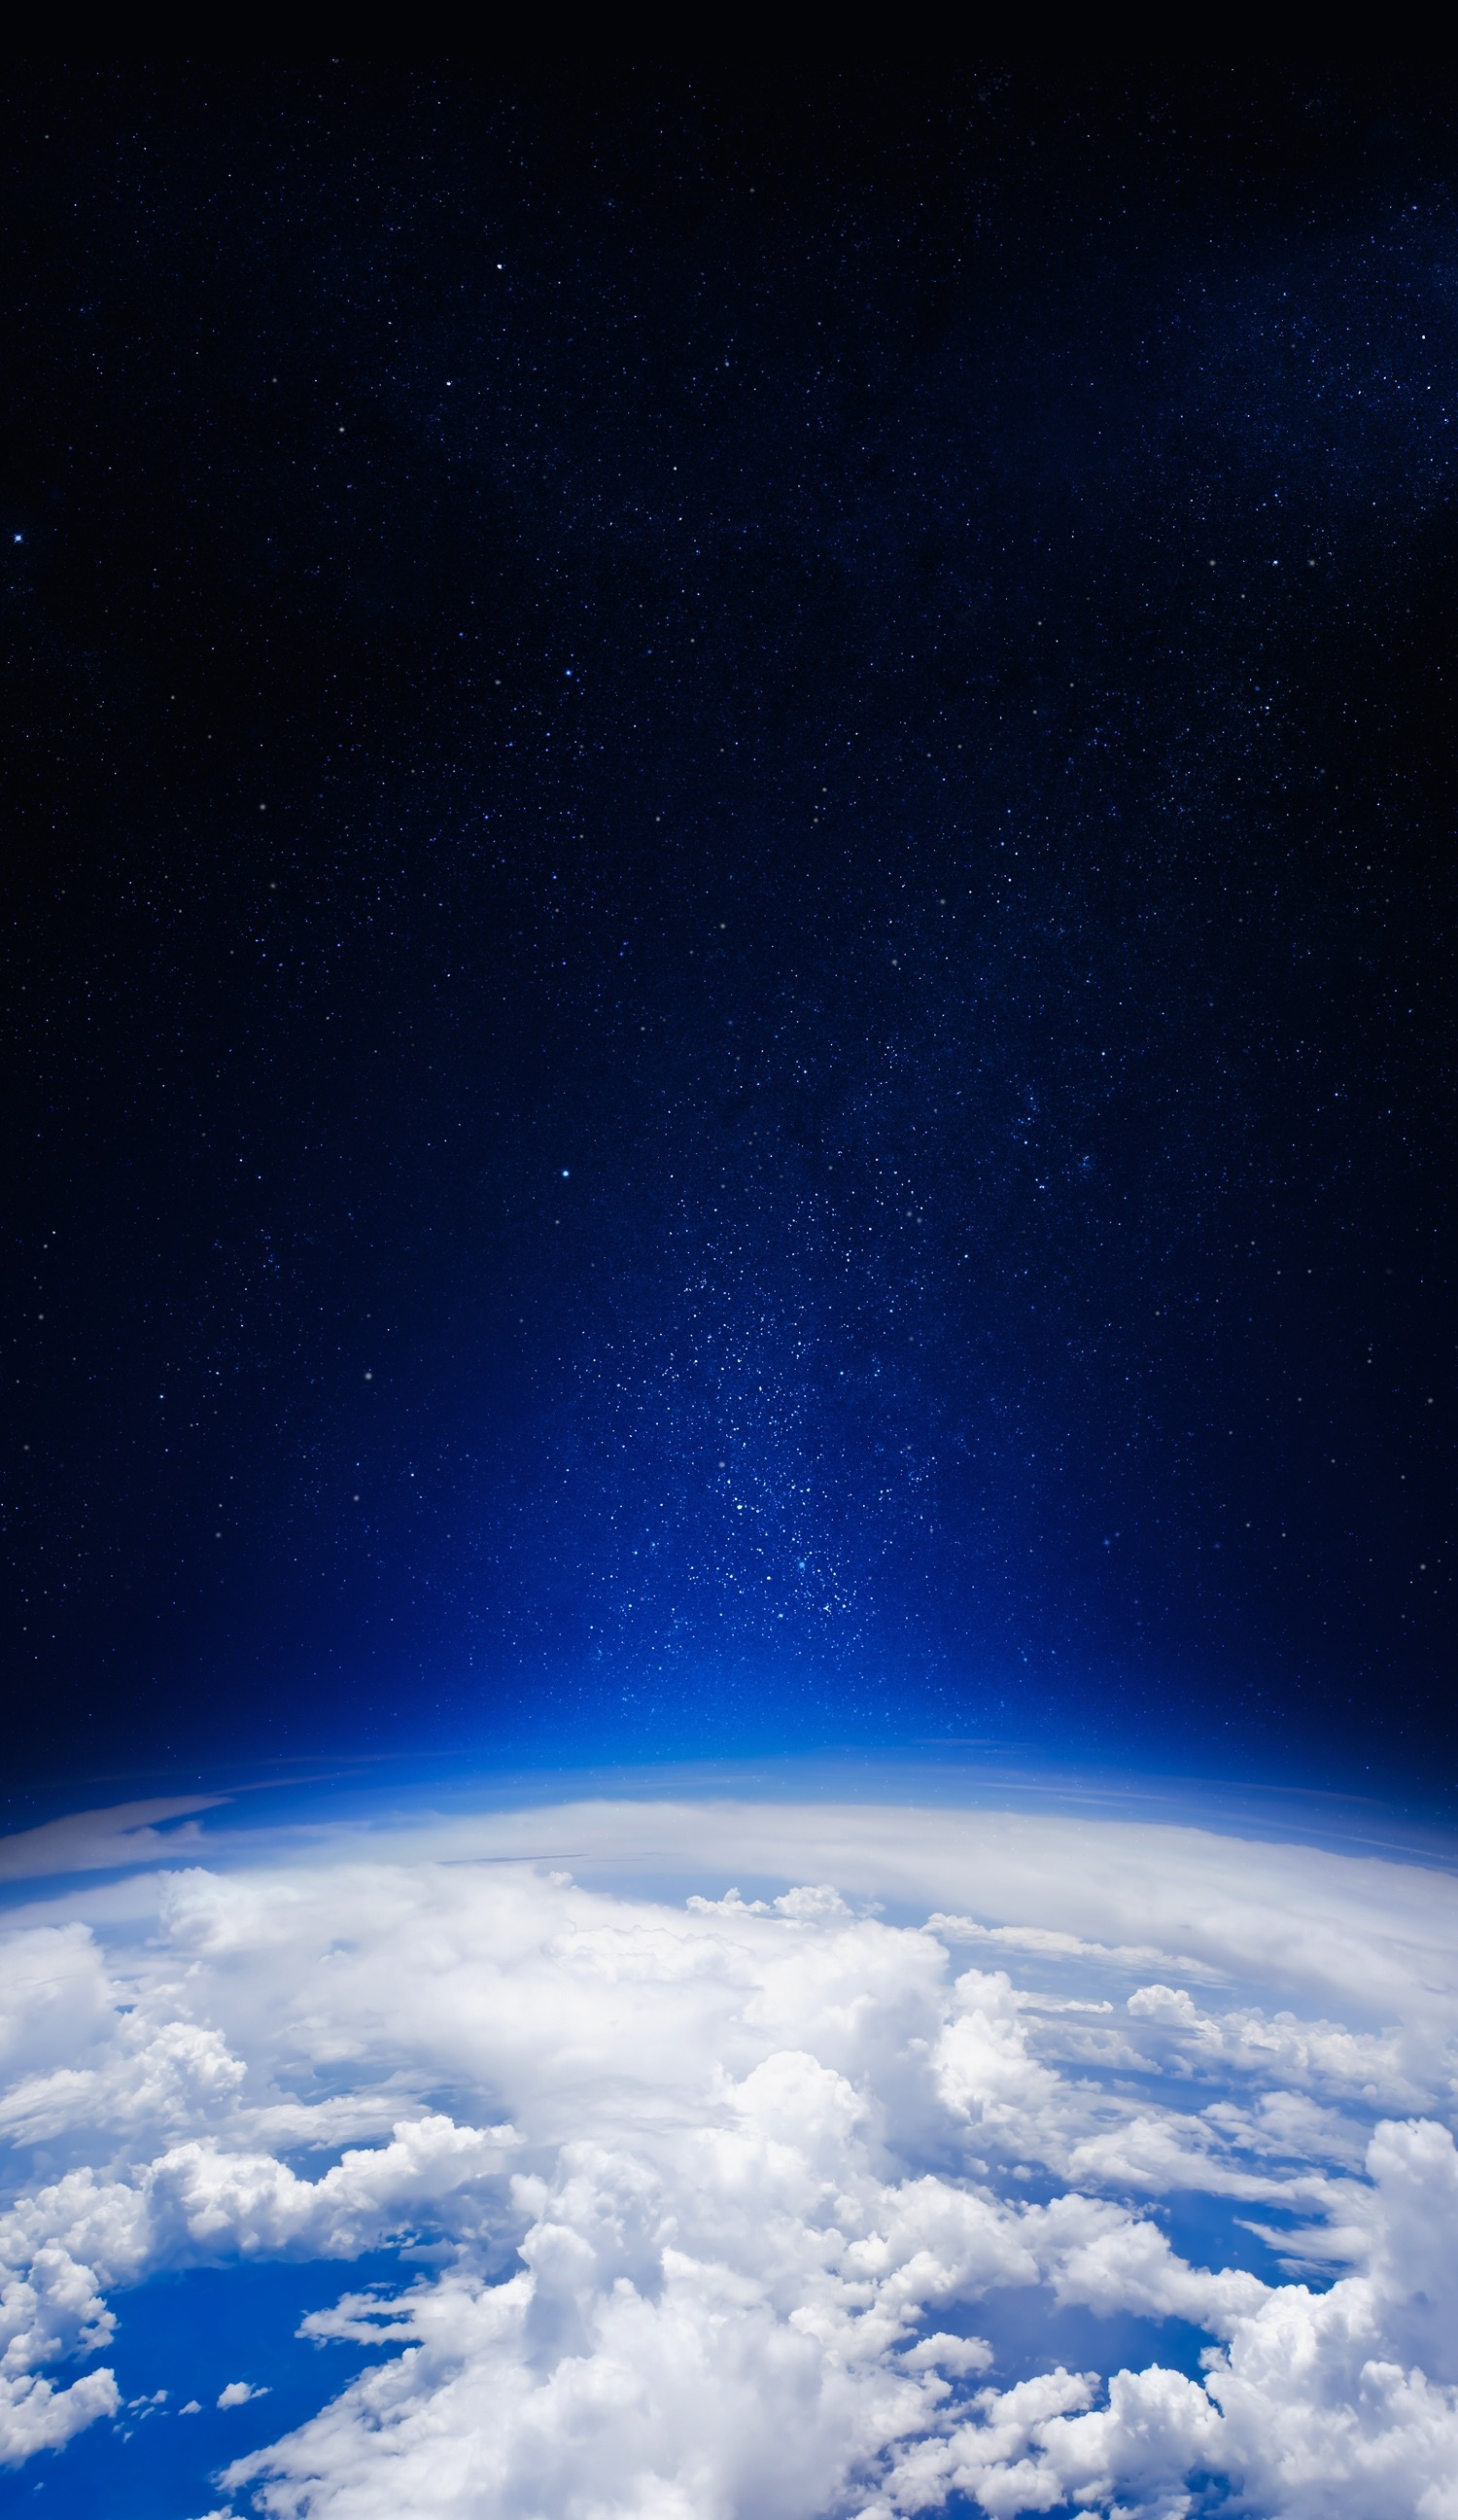 iPhone 6   iPhone 6 Plus Wallpapers     Gadgetmac iphone 6 6 plus space and earth blue